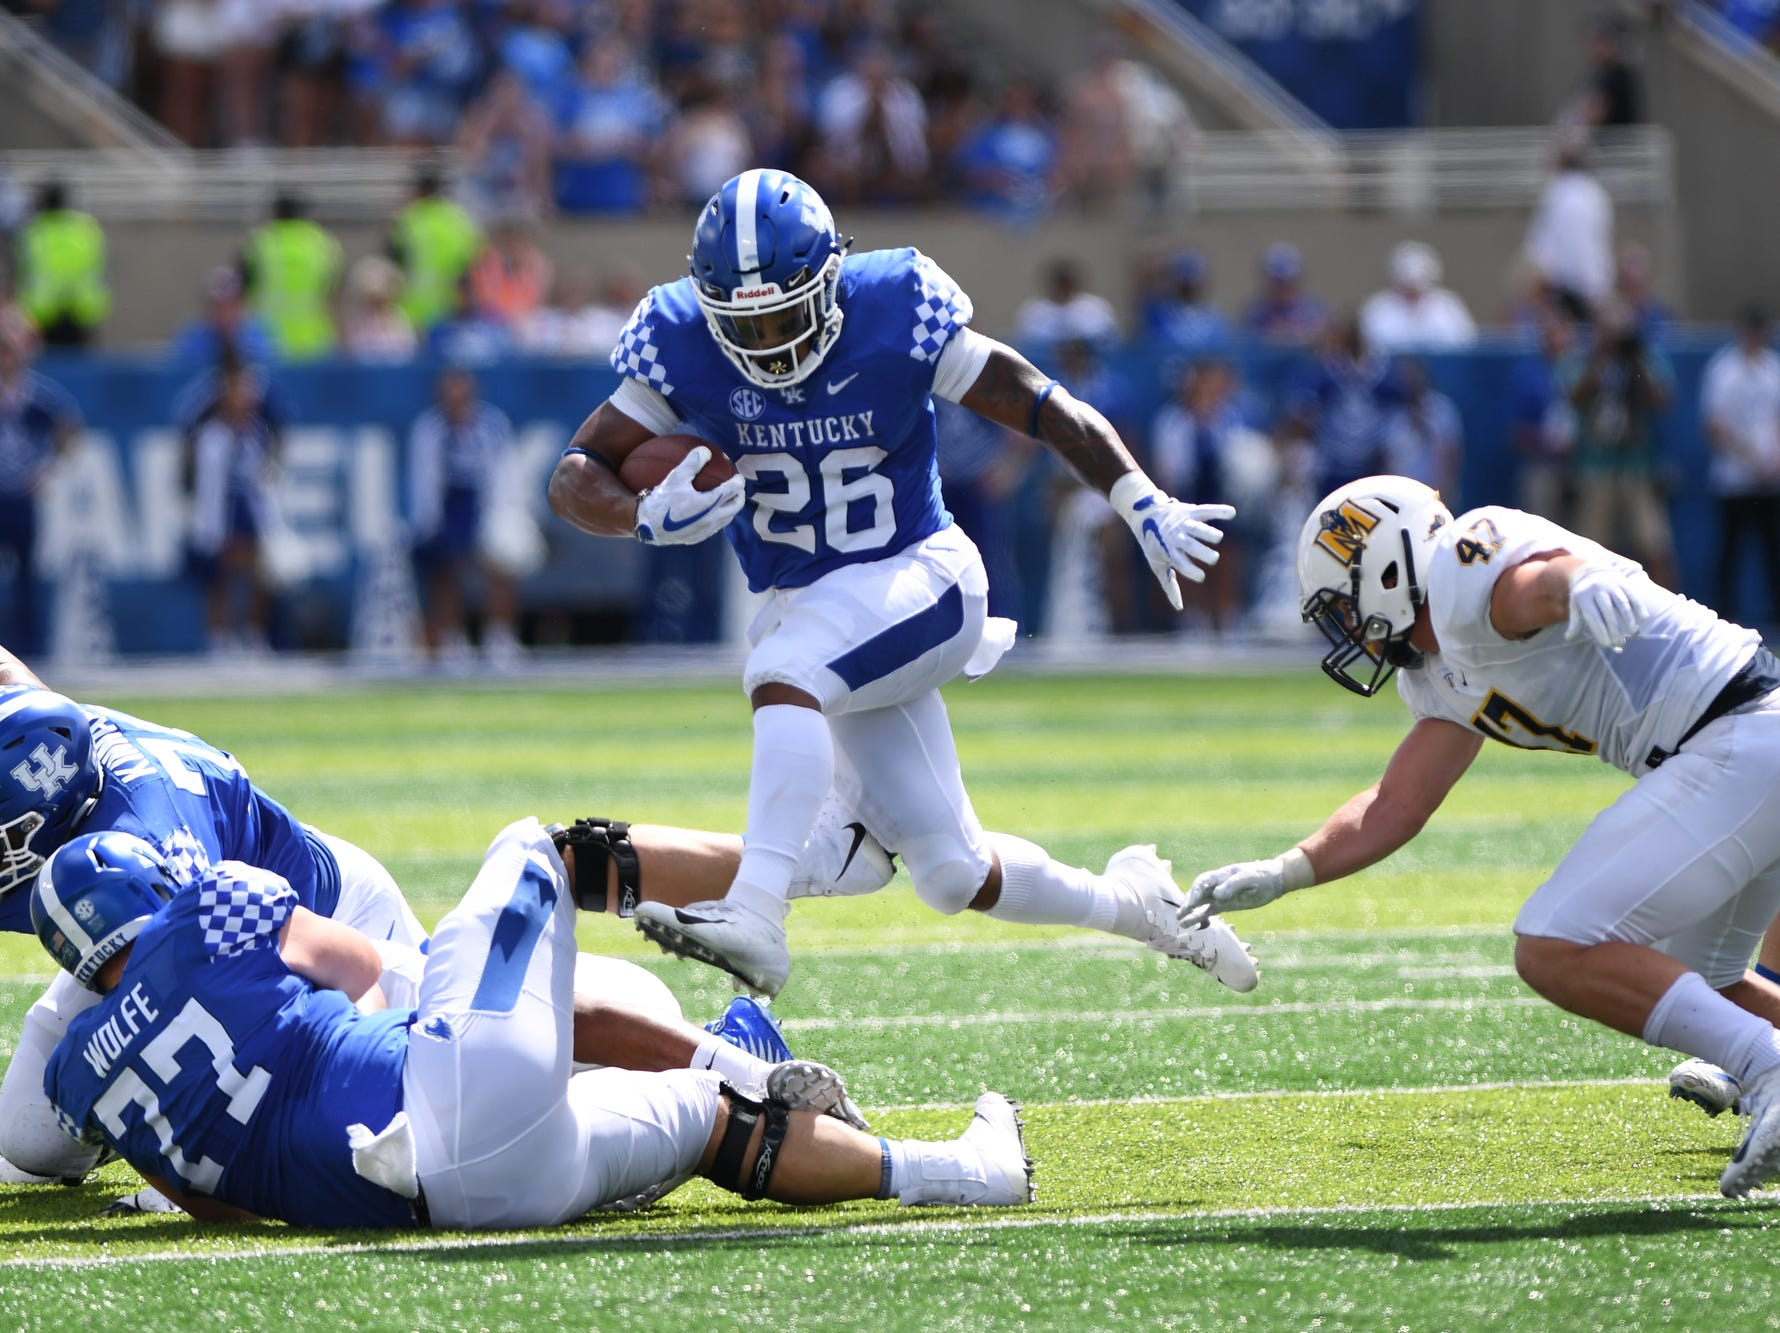 UK RB Benny Snell, Jr. runs the ball during the University of Kentucky football game against Murray State at Kroger Field in Lexington, Kentucky on Saturday, September 15, 2018.